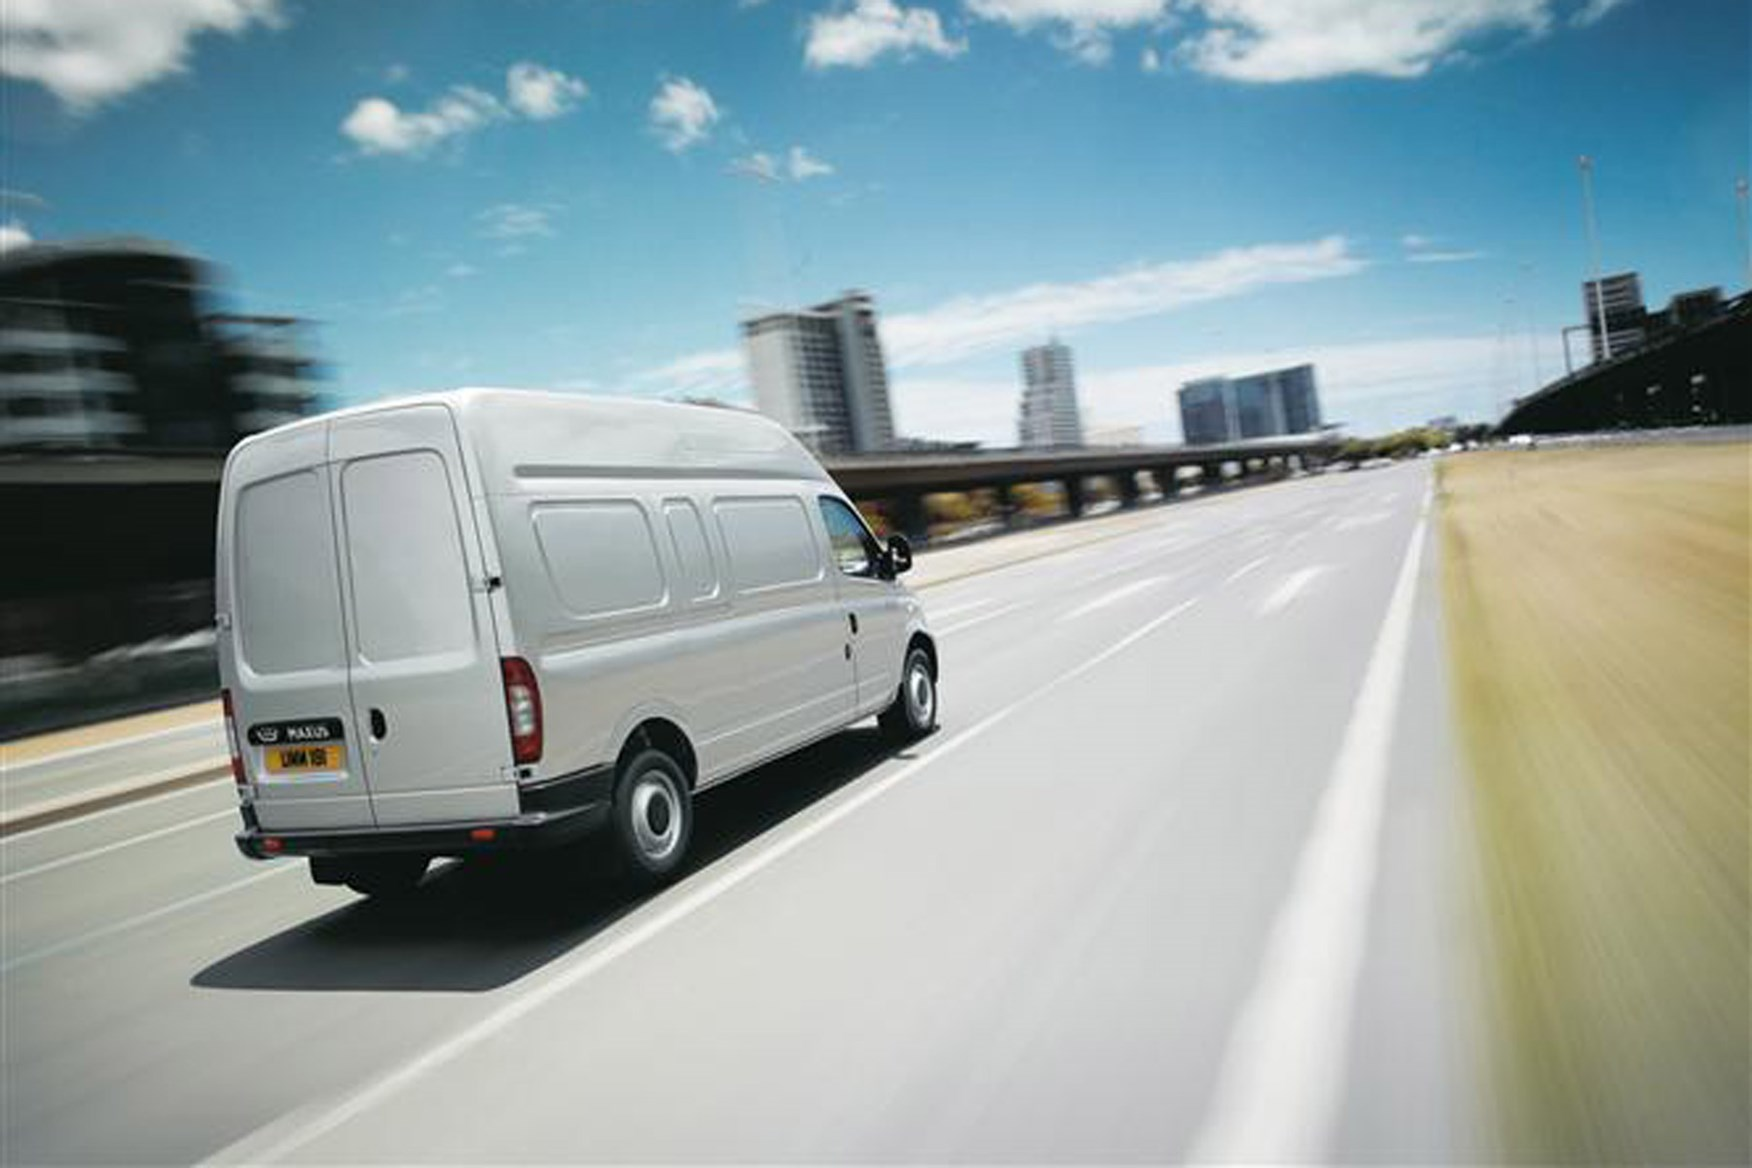 LDV Maxus review on Parkers Vans - on the road, rear exterior